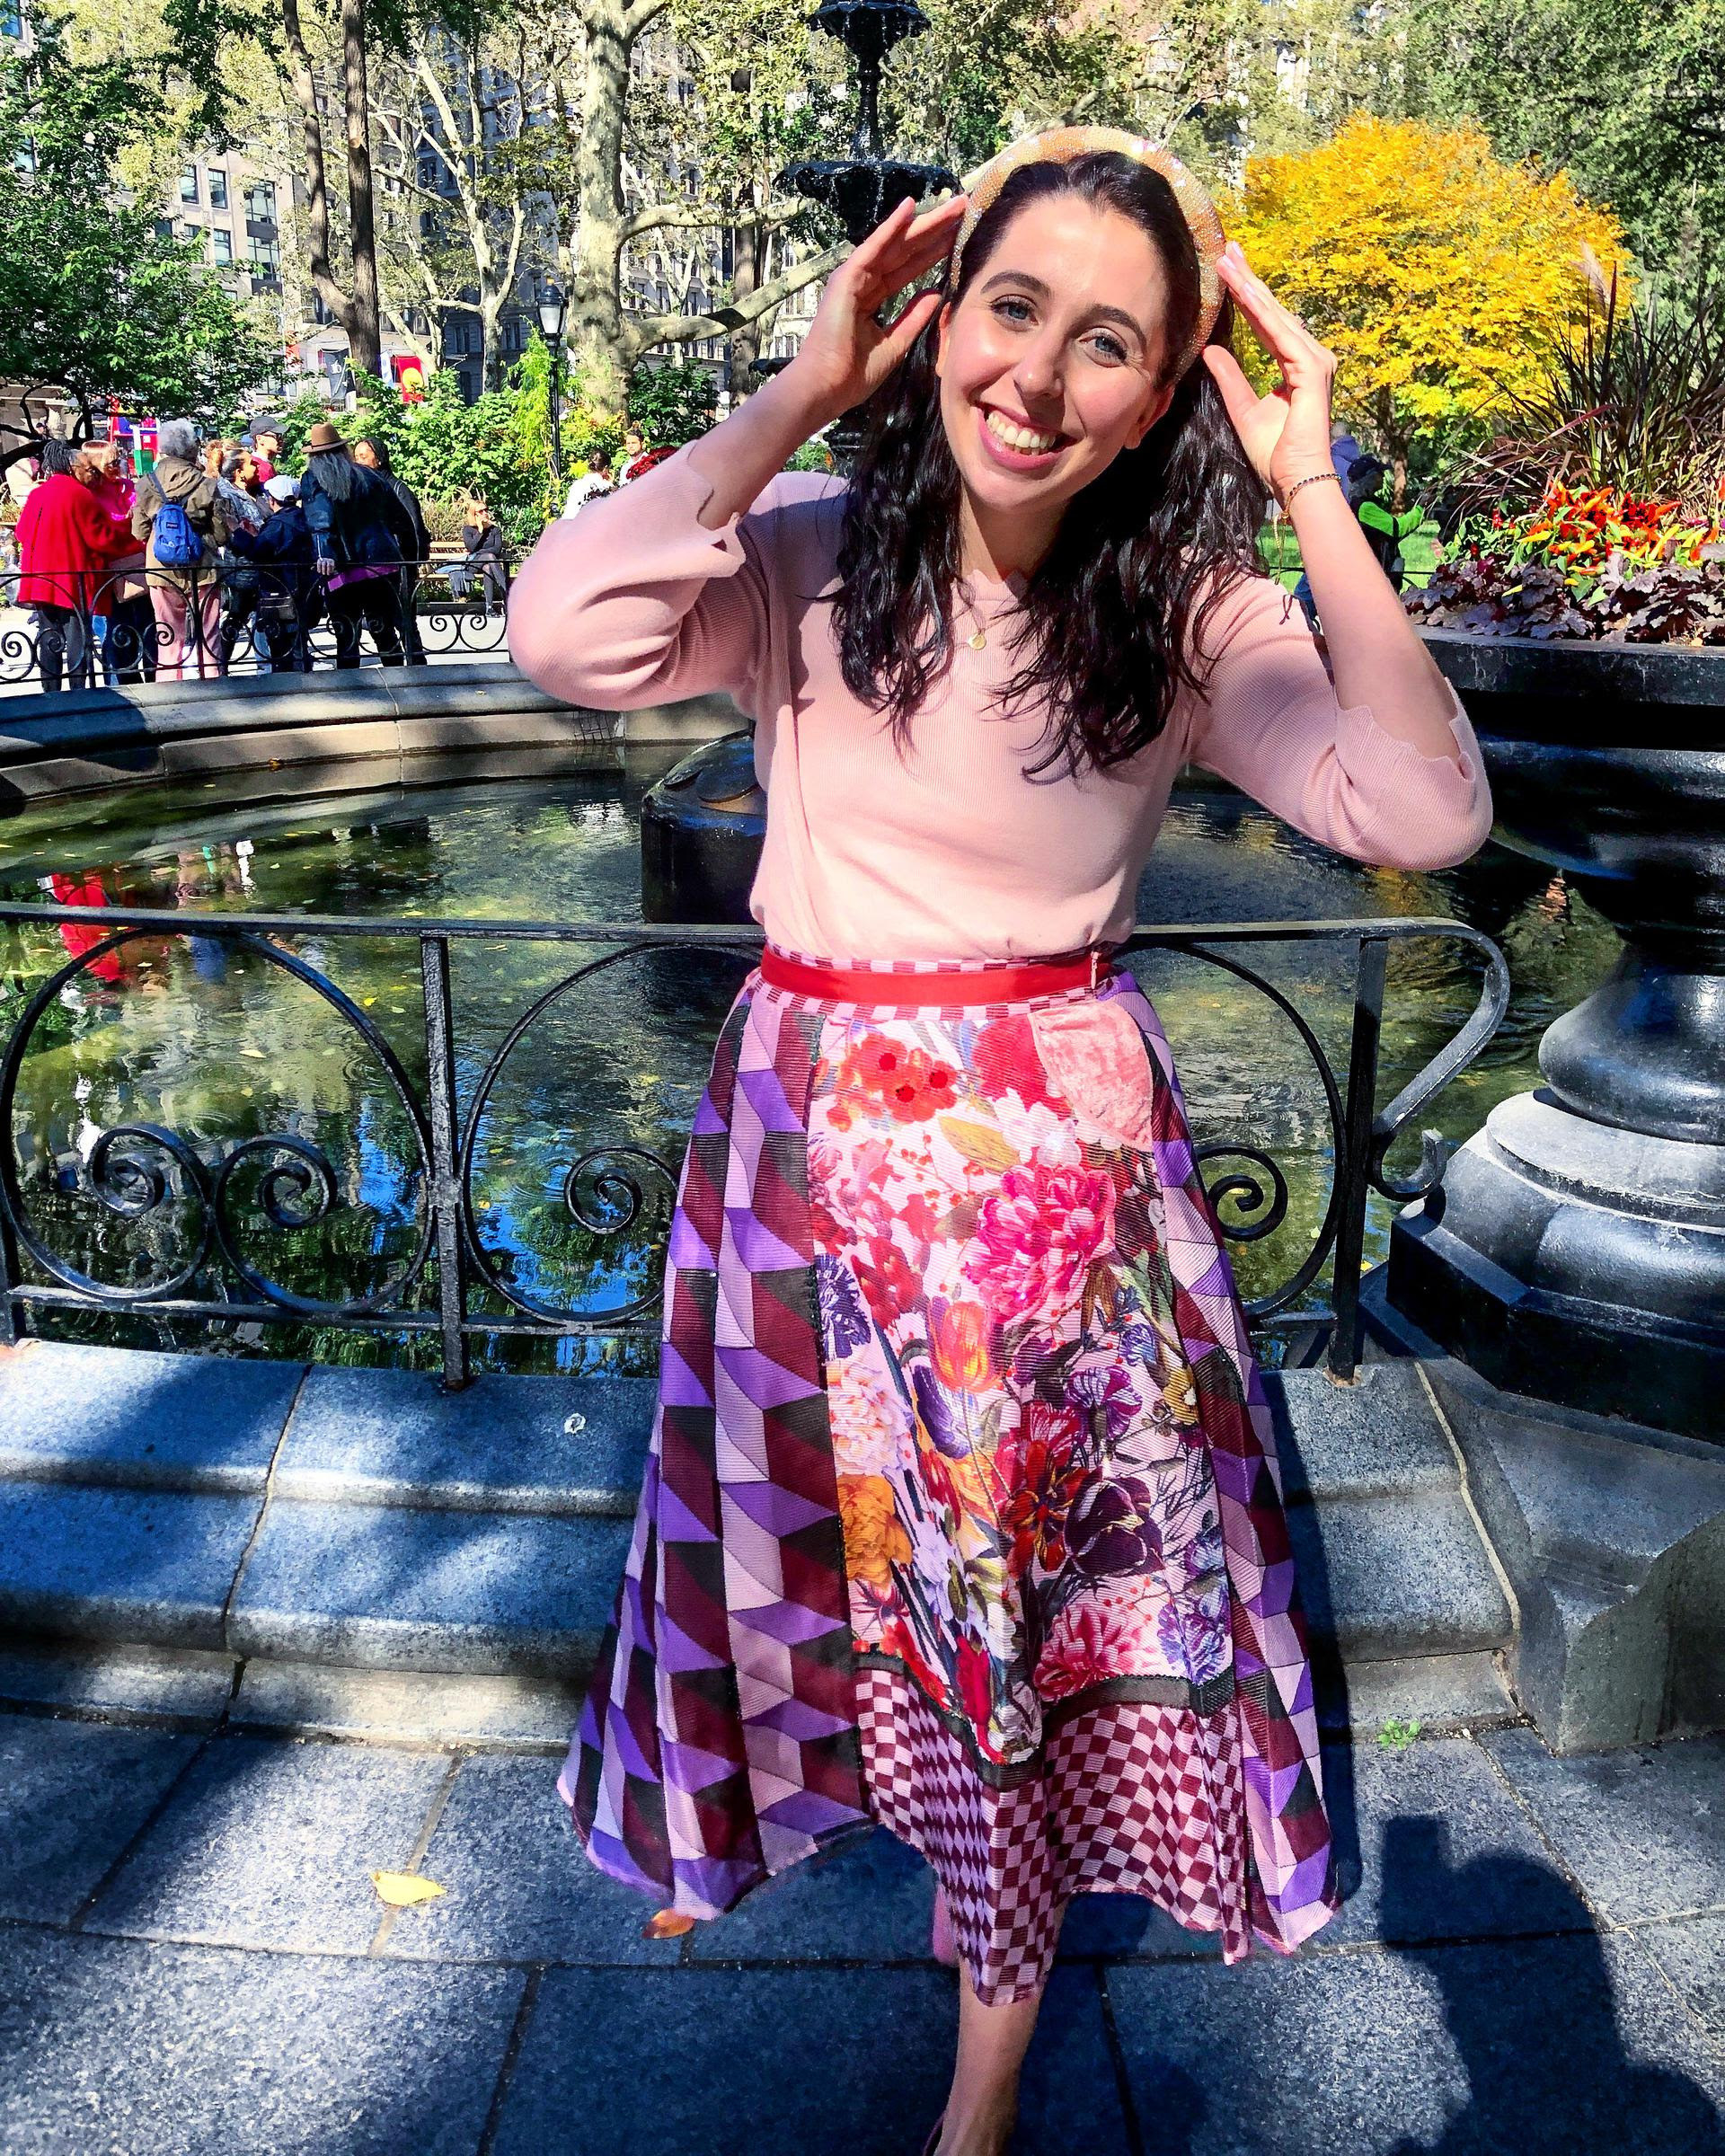 abby posing by a fountain